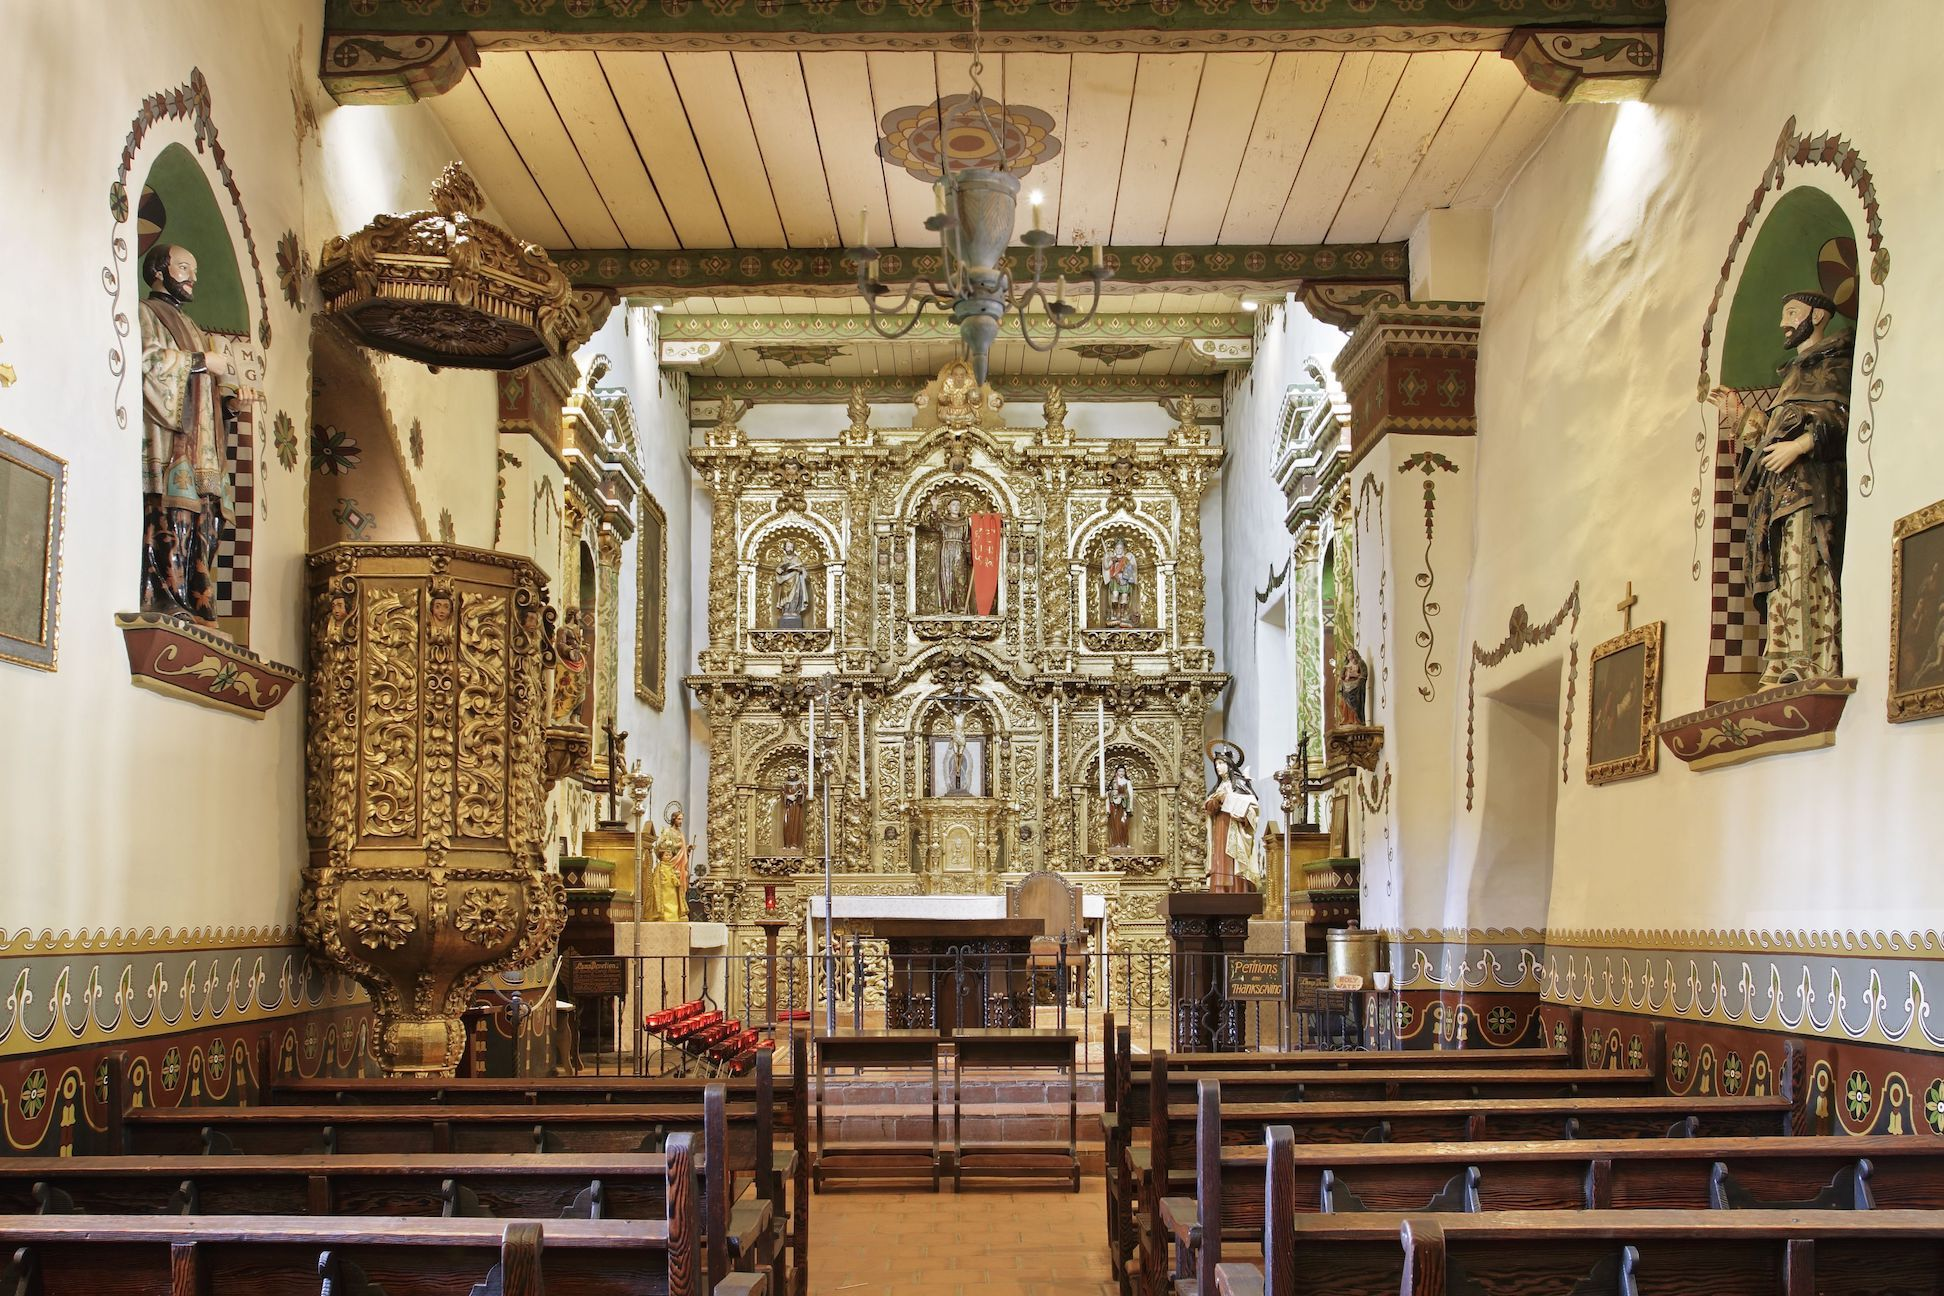 Mission San Juan Capistrano The Sanctuary Of Serra S Chapel It Is Was Built In 1777 And Is The Only Extant Structure Where It Has Been Documented That Ju